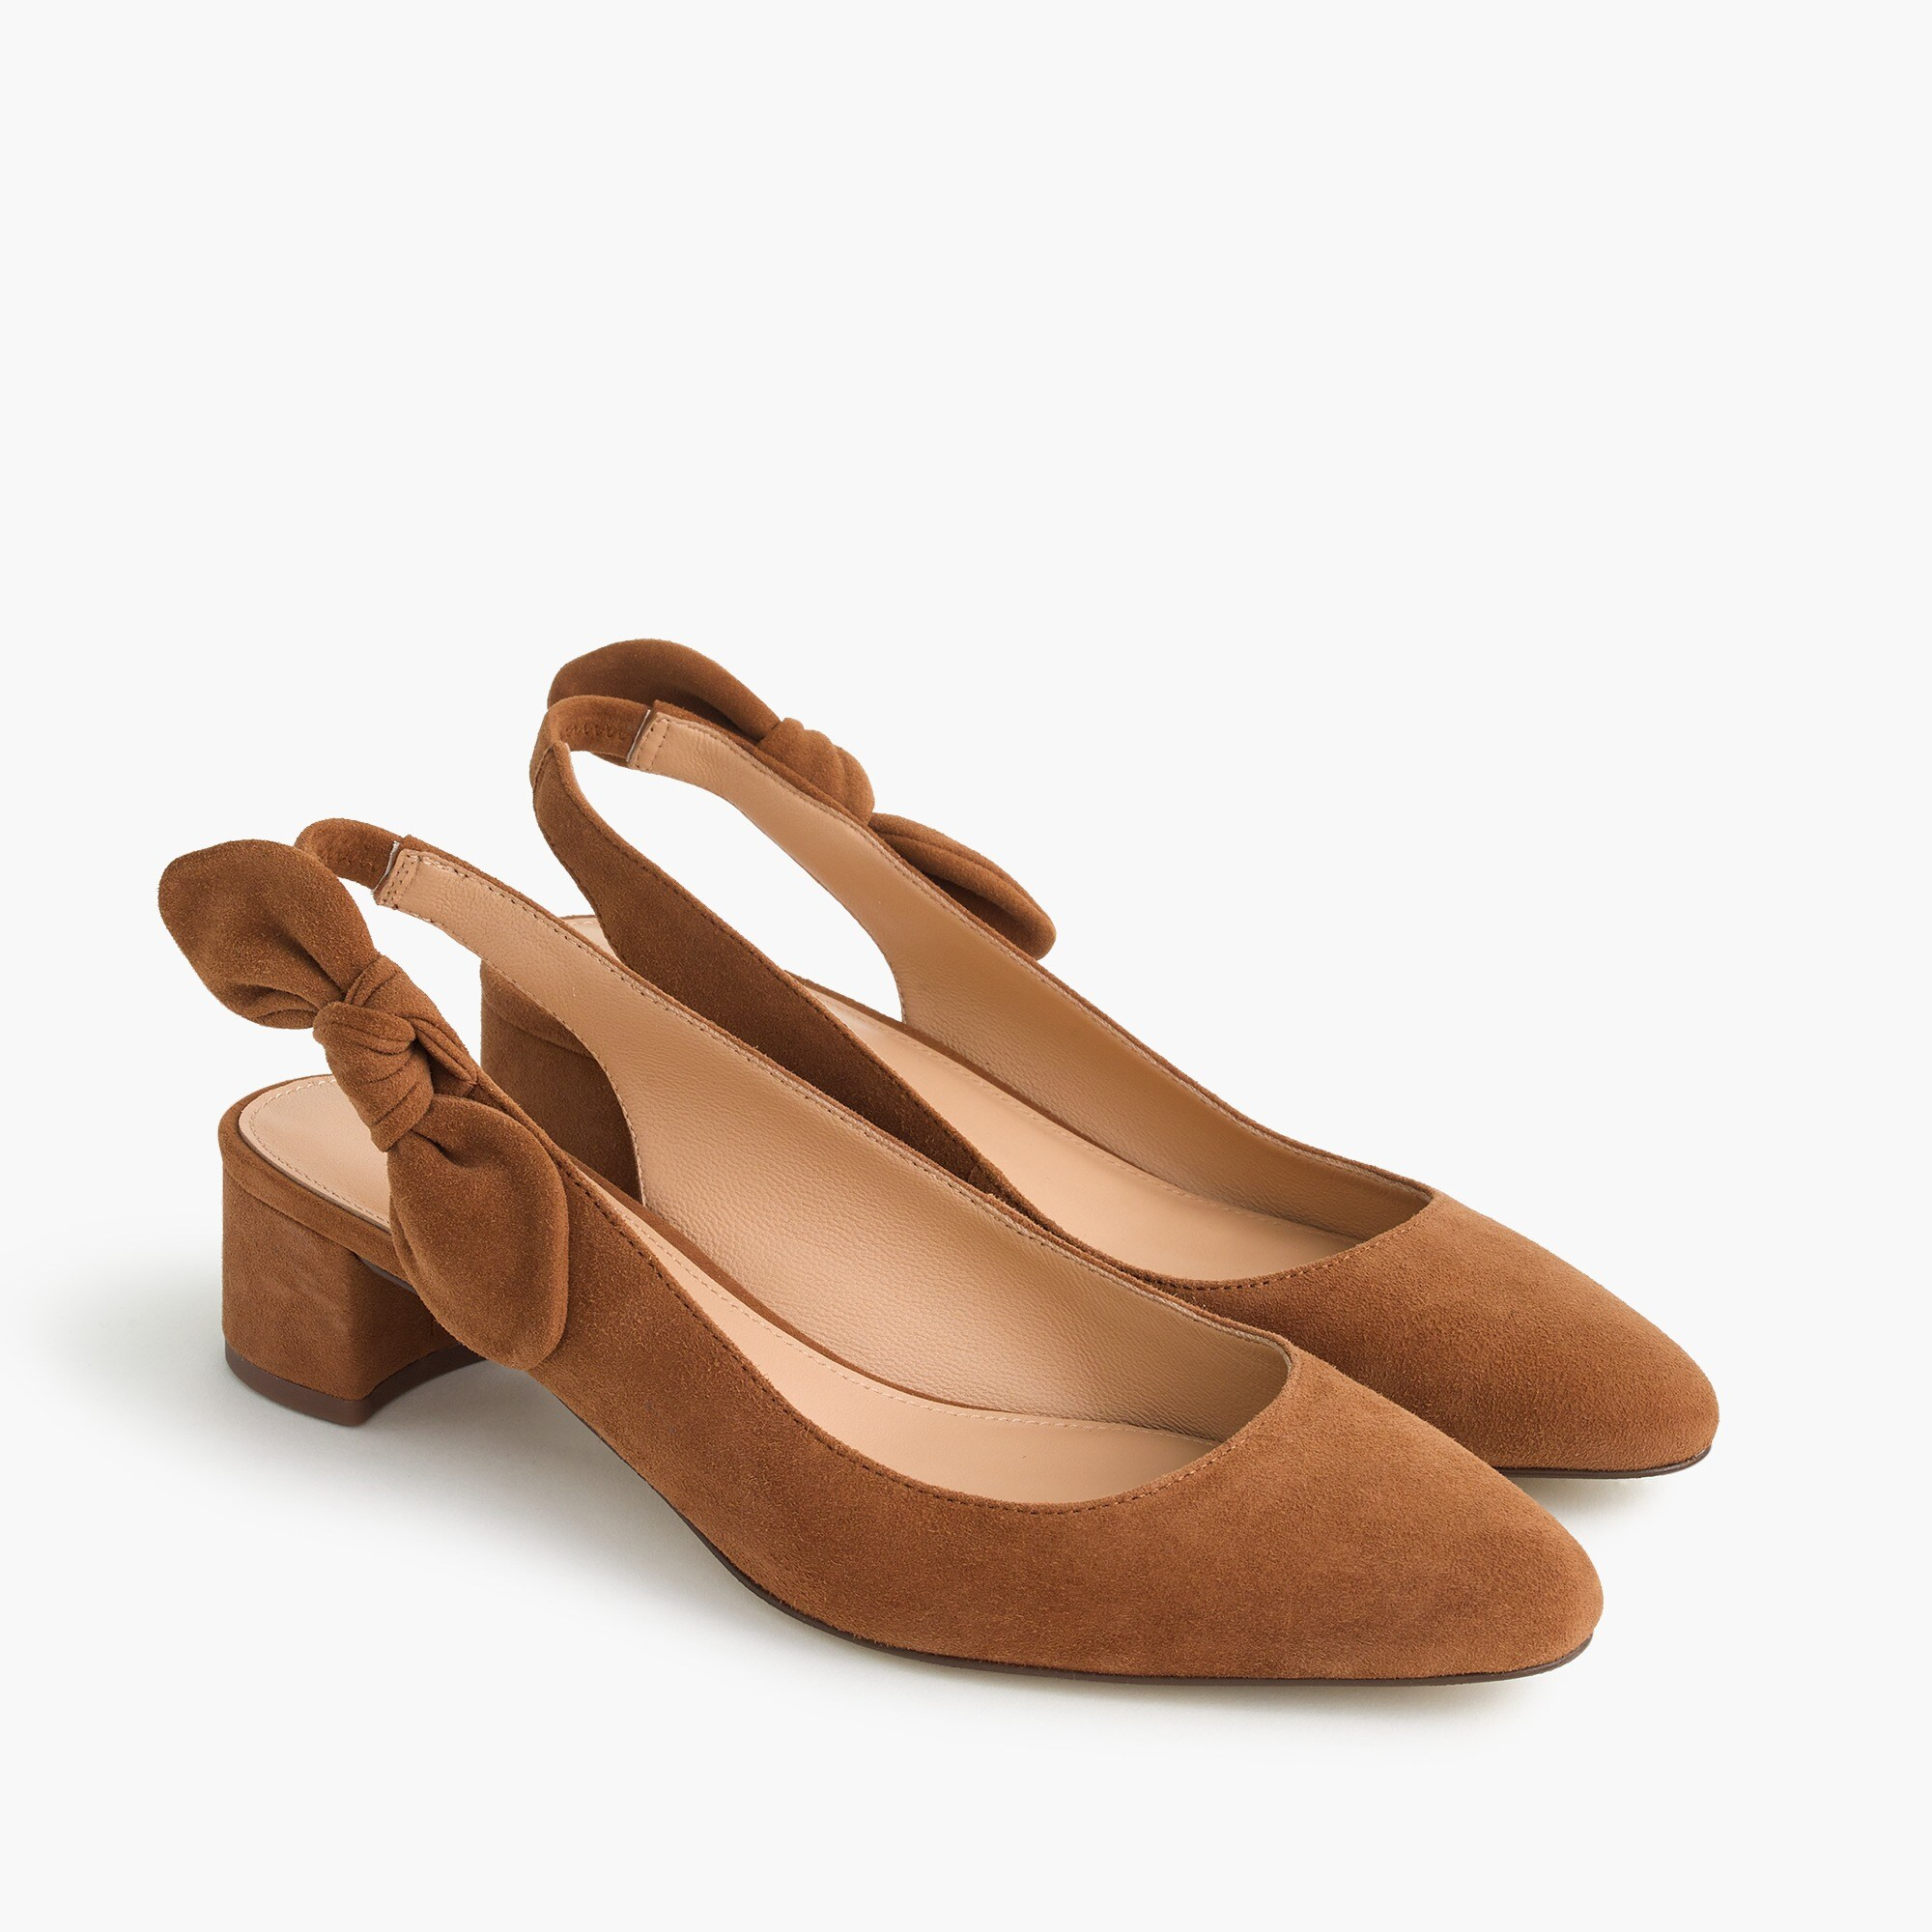 women's slingback bow pumps (40mm) in suede - women's heels